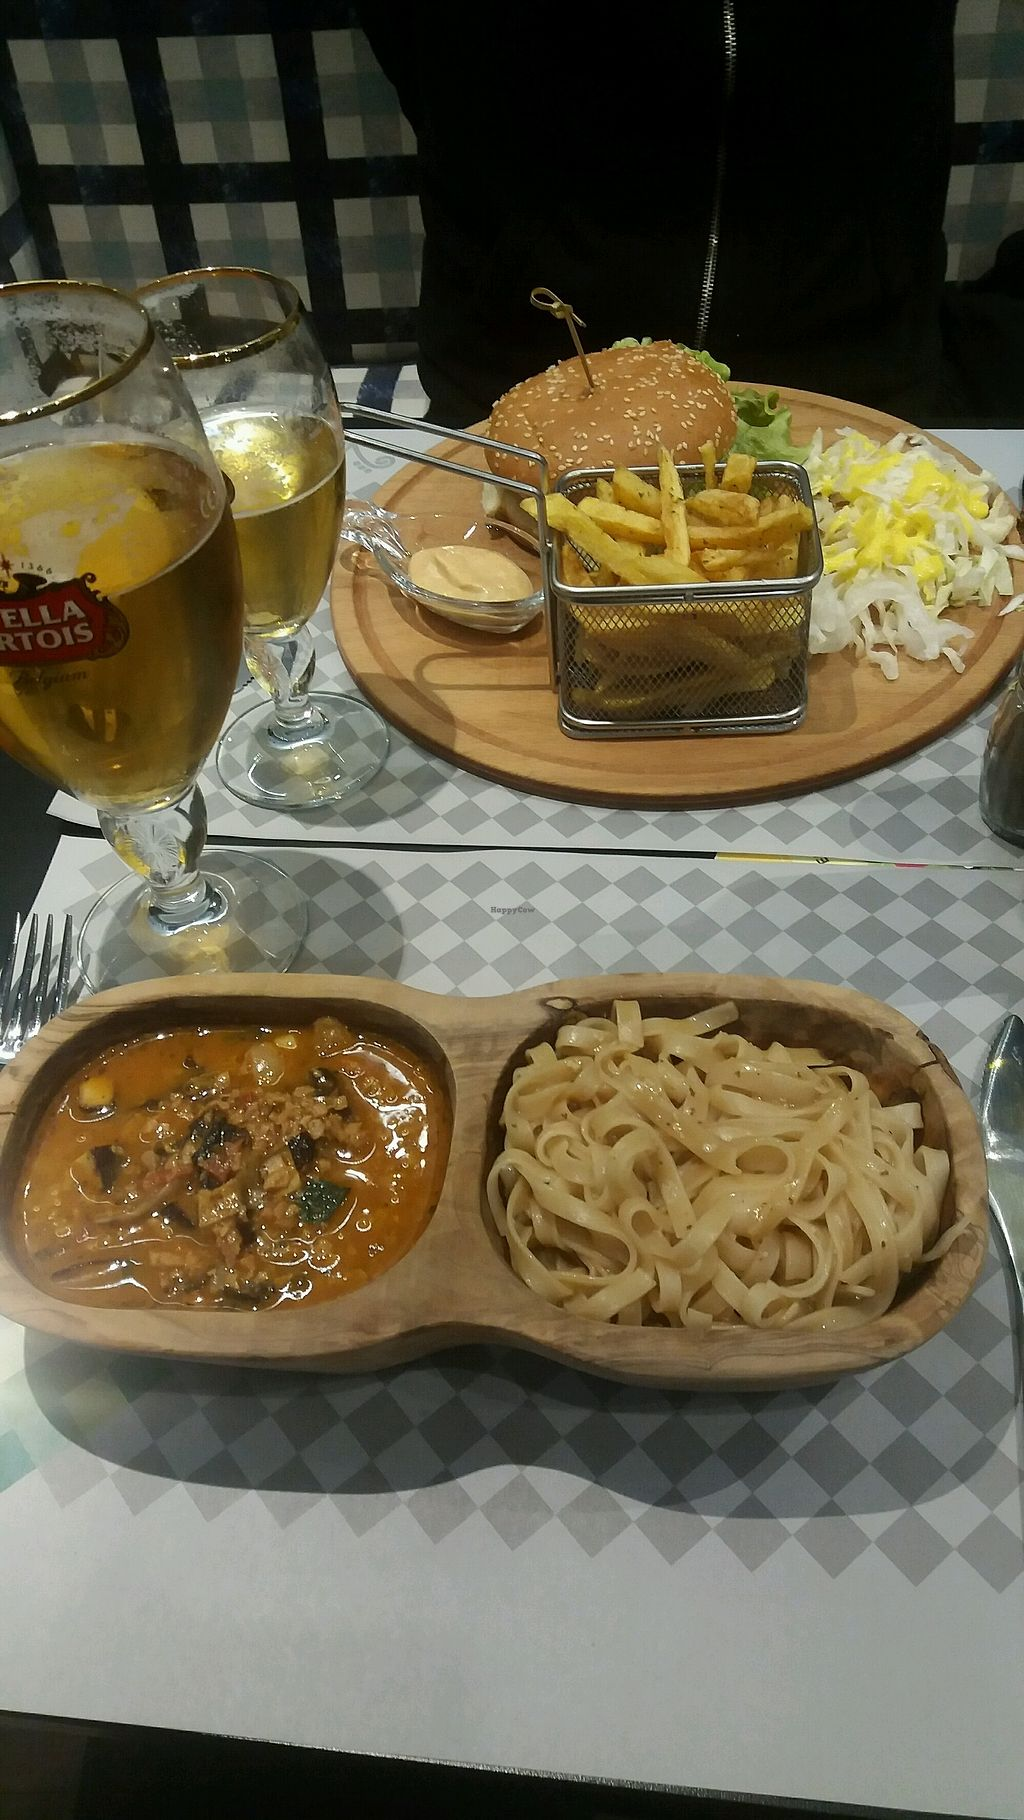 """Photo of Veggies  by <a href=""""/members/profile/Kamilsson"""">Kamilsson</a> <br/>burger with fries and noodles <br/> March 23, 2018  - <a href='/contact/abuse/image/76477/374973'>Report</a>"""